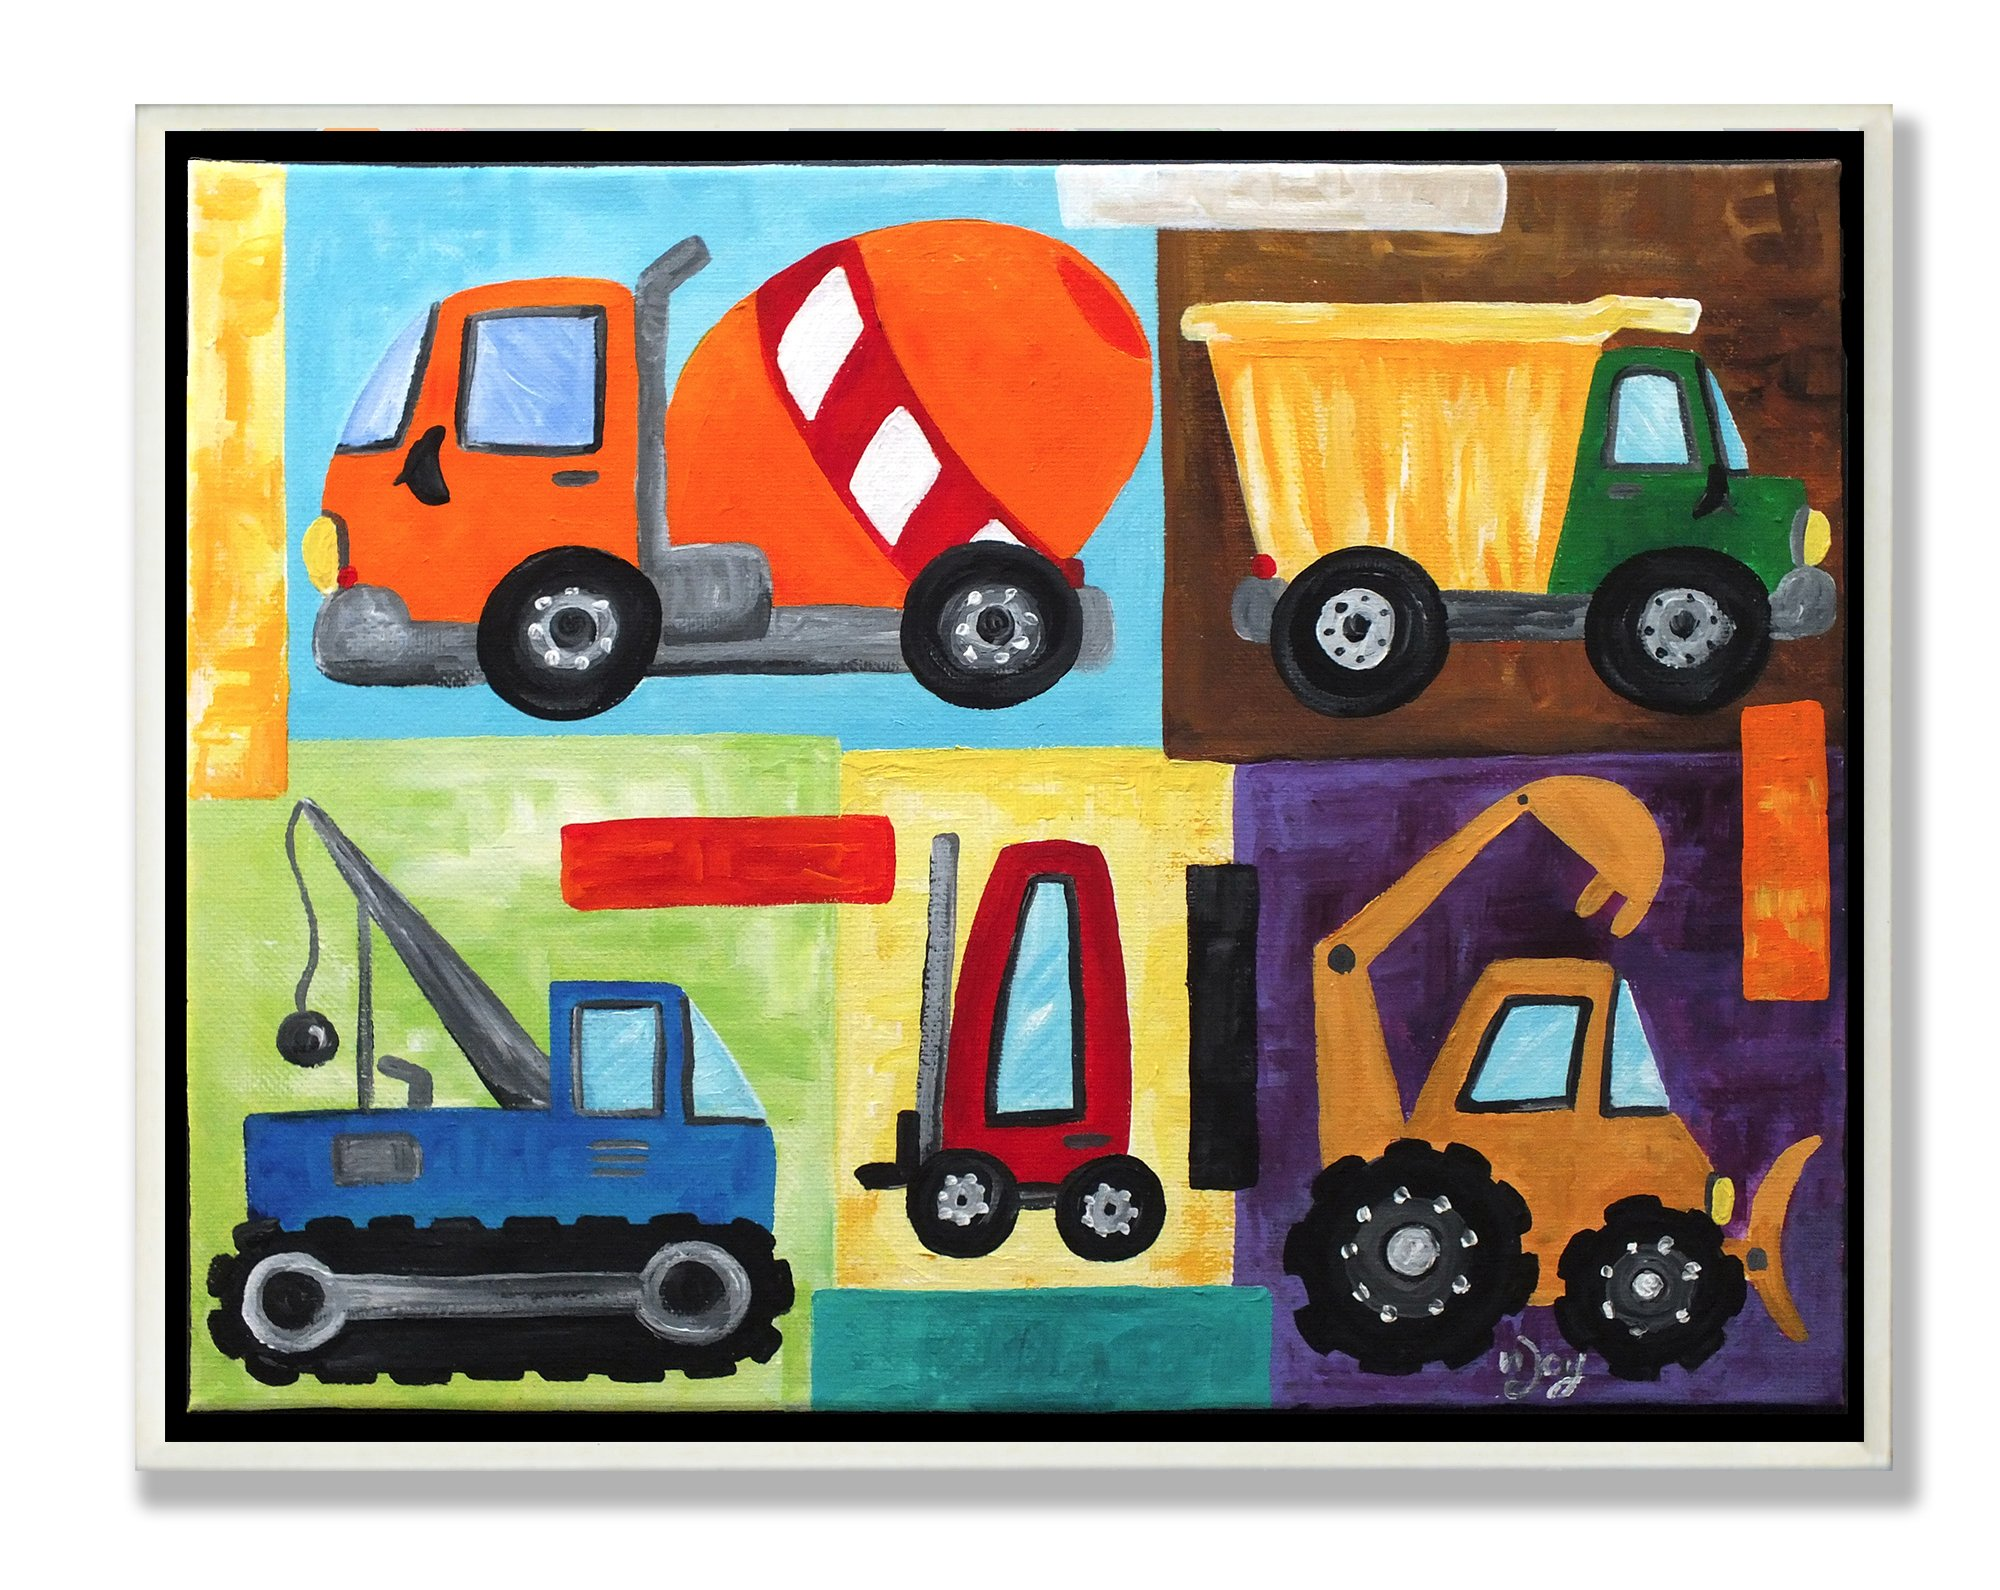 The Kids Room by Stupell Construction Trucks Rectangle Wall Plaque Set, 11 x 0.5 x 15, Proudly Made in USA